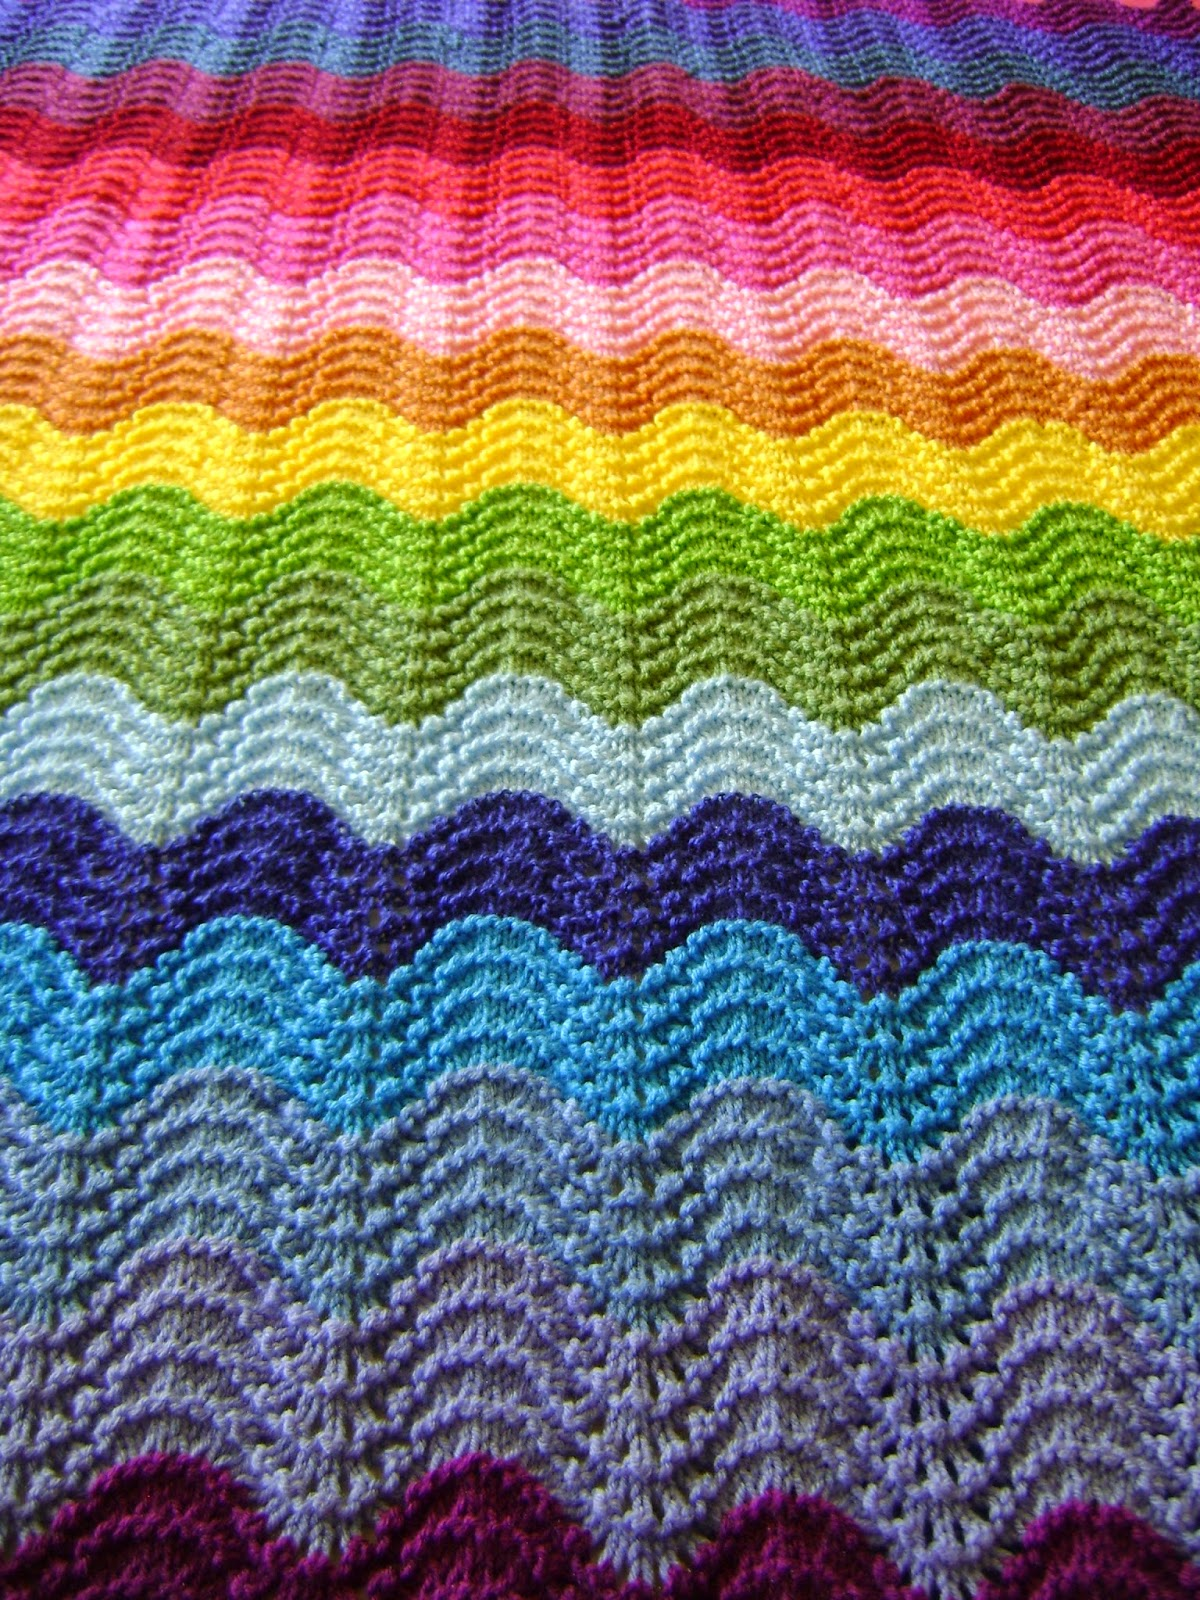 Knitting Stitches Waves : Creative Designs by Sheila Zachariae: Knitting Waves in Technicolor